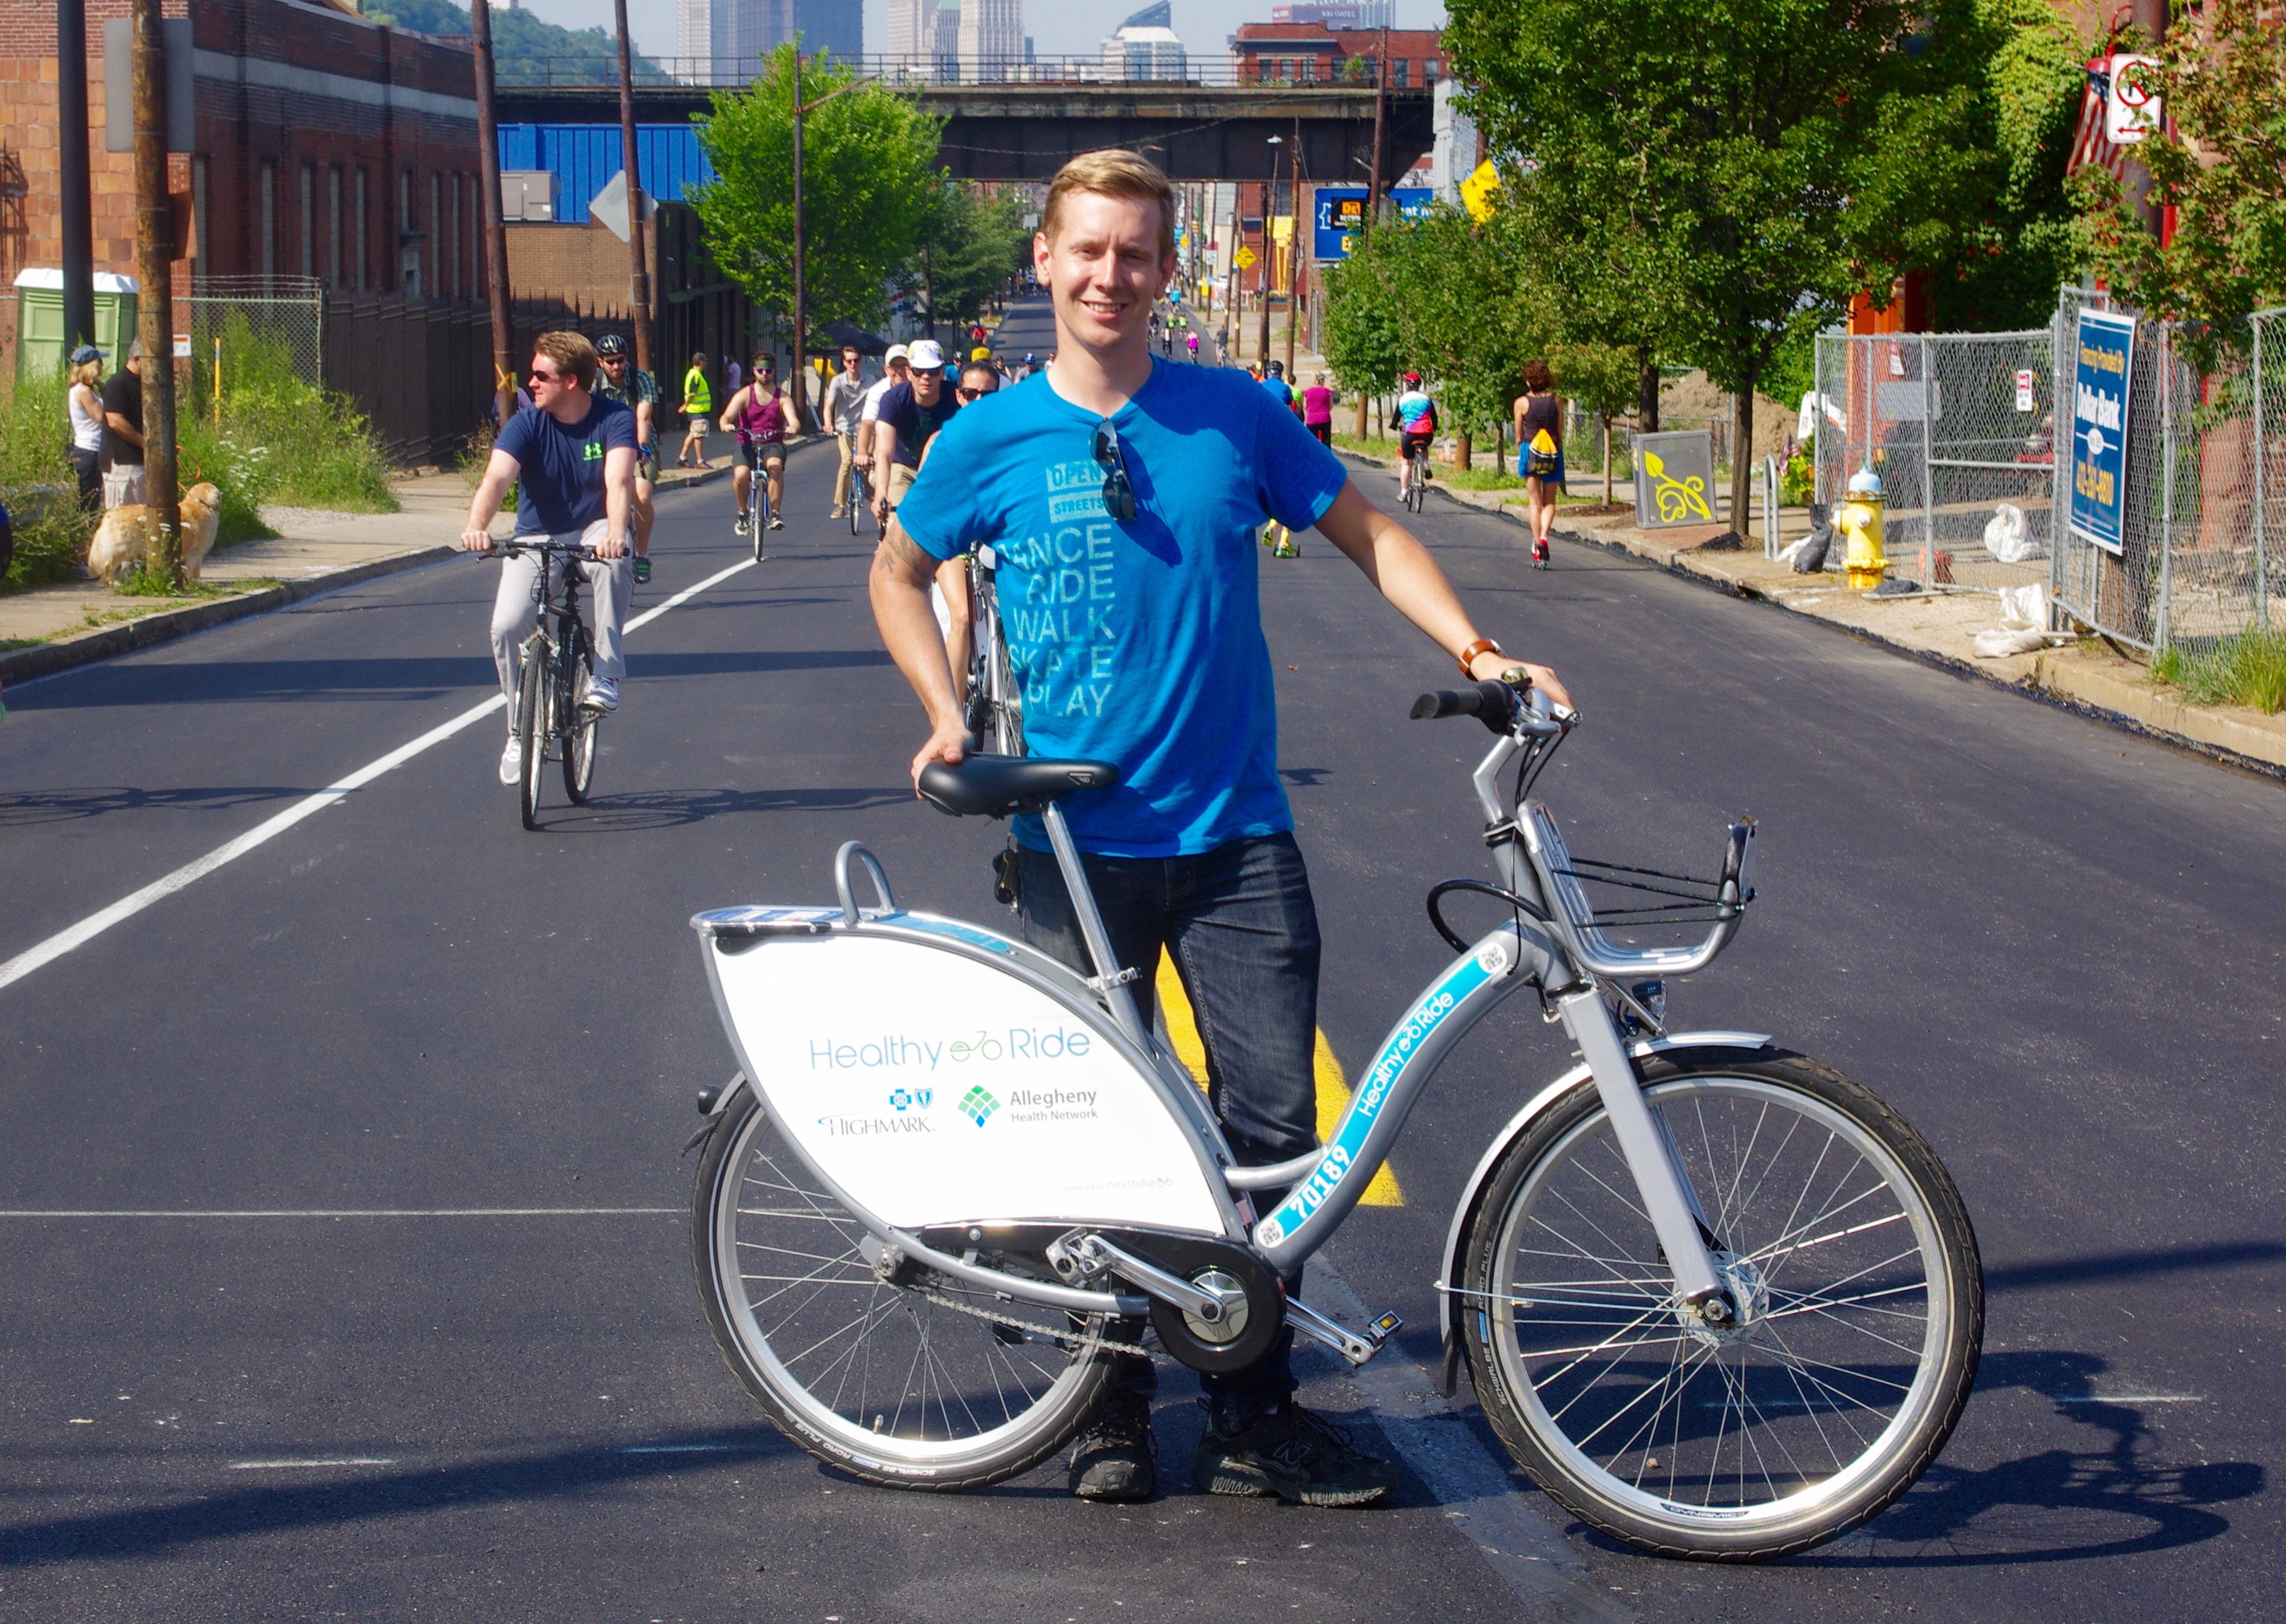 Mike Carroll, event manager for BikePGH, kept an eye on activities while riding a Healthy Ride bike share bicycle.